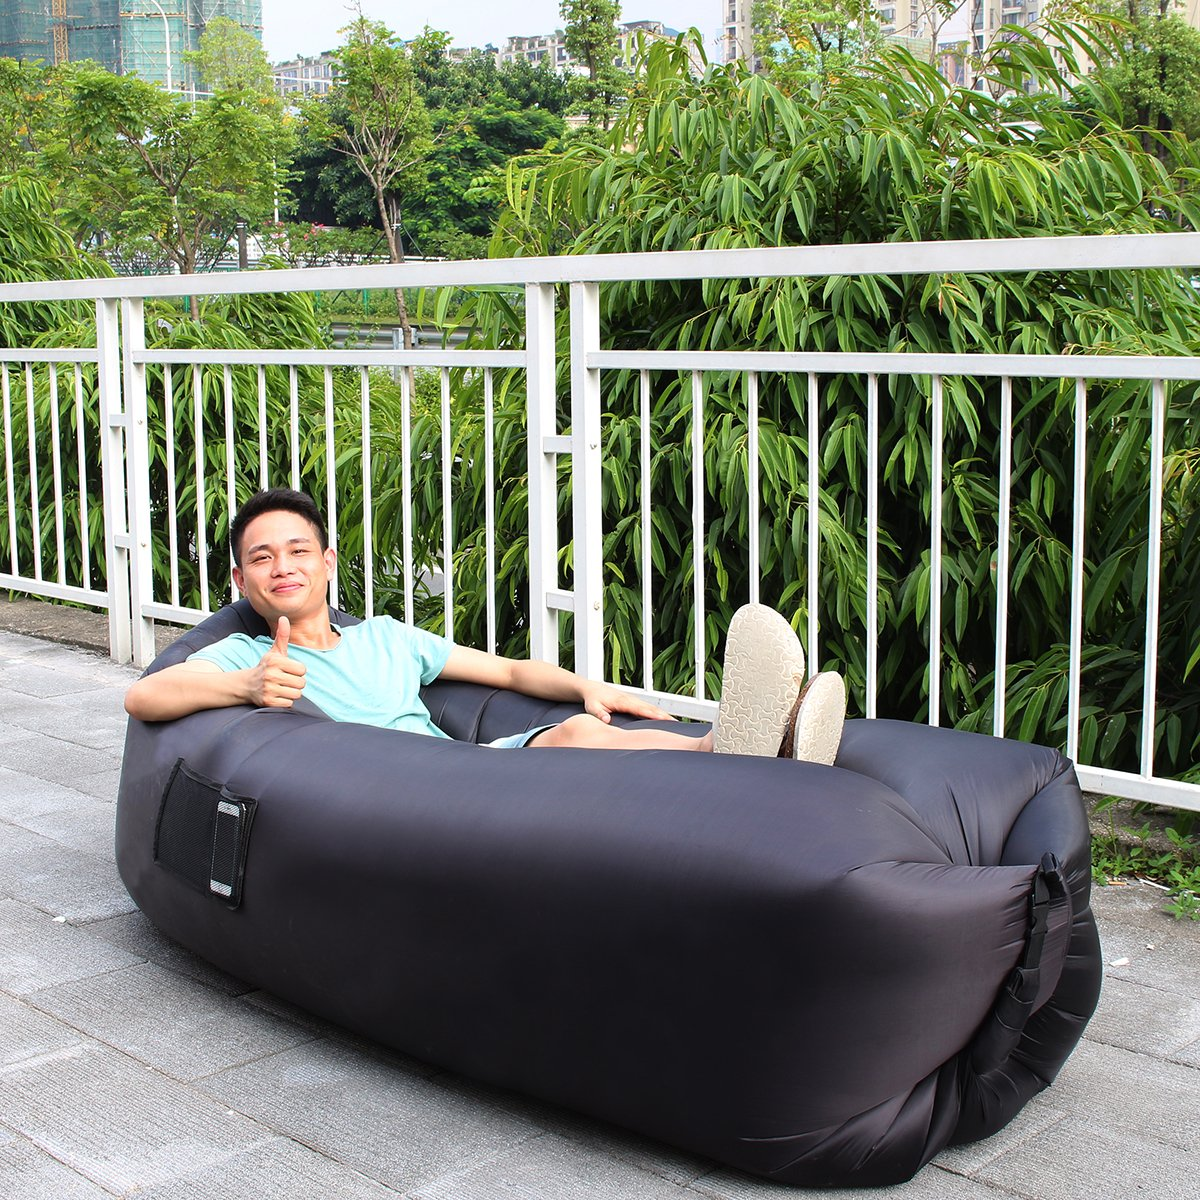 XYH Inflatable Lounger Couch, Portable Blow Up Lounge Chair, Pool Air  Hammock, Air Sofa and Pool Float Ships Fast, Waterproof Wind Breeze Bean  Bag, Fast Inflate Lounger for Beach, Camping.- Buy Online